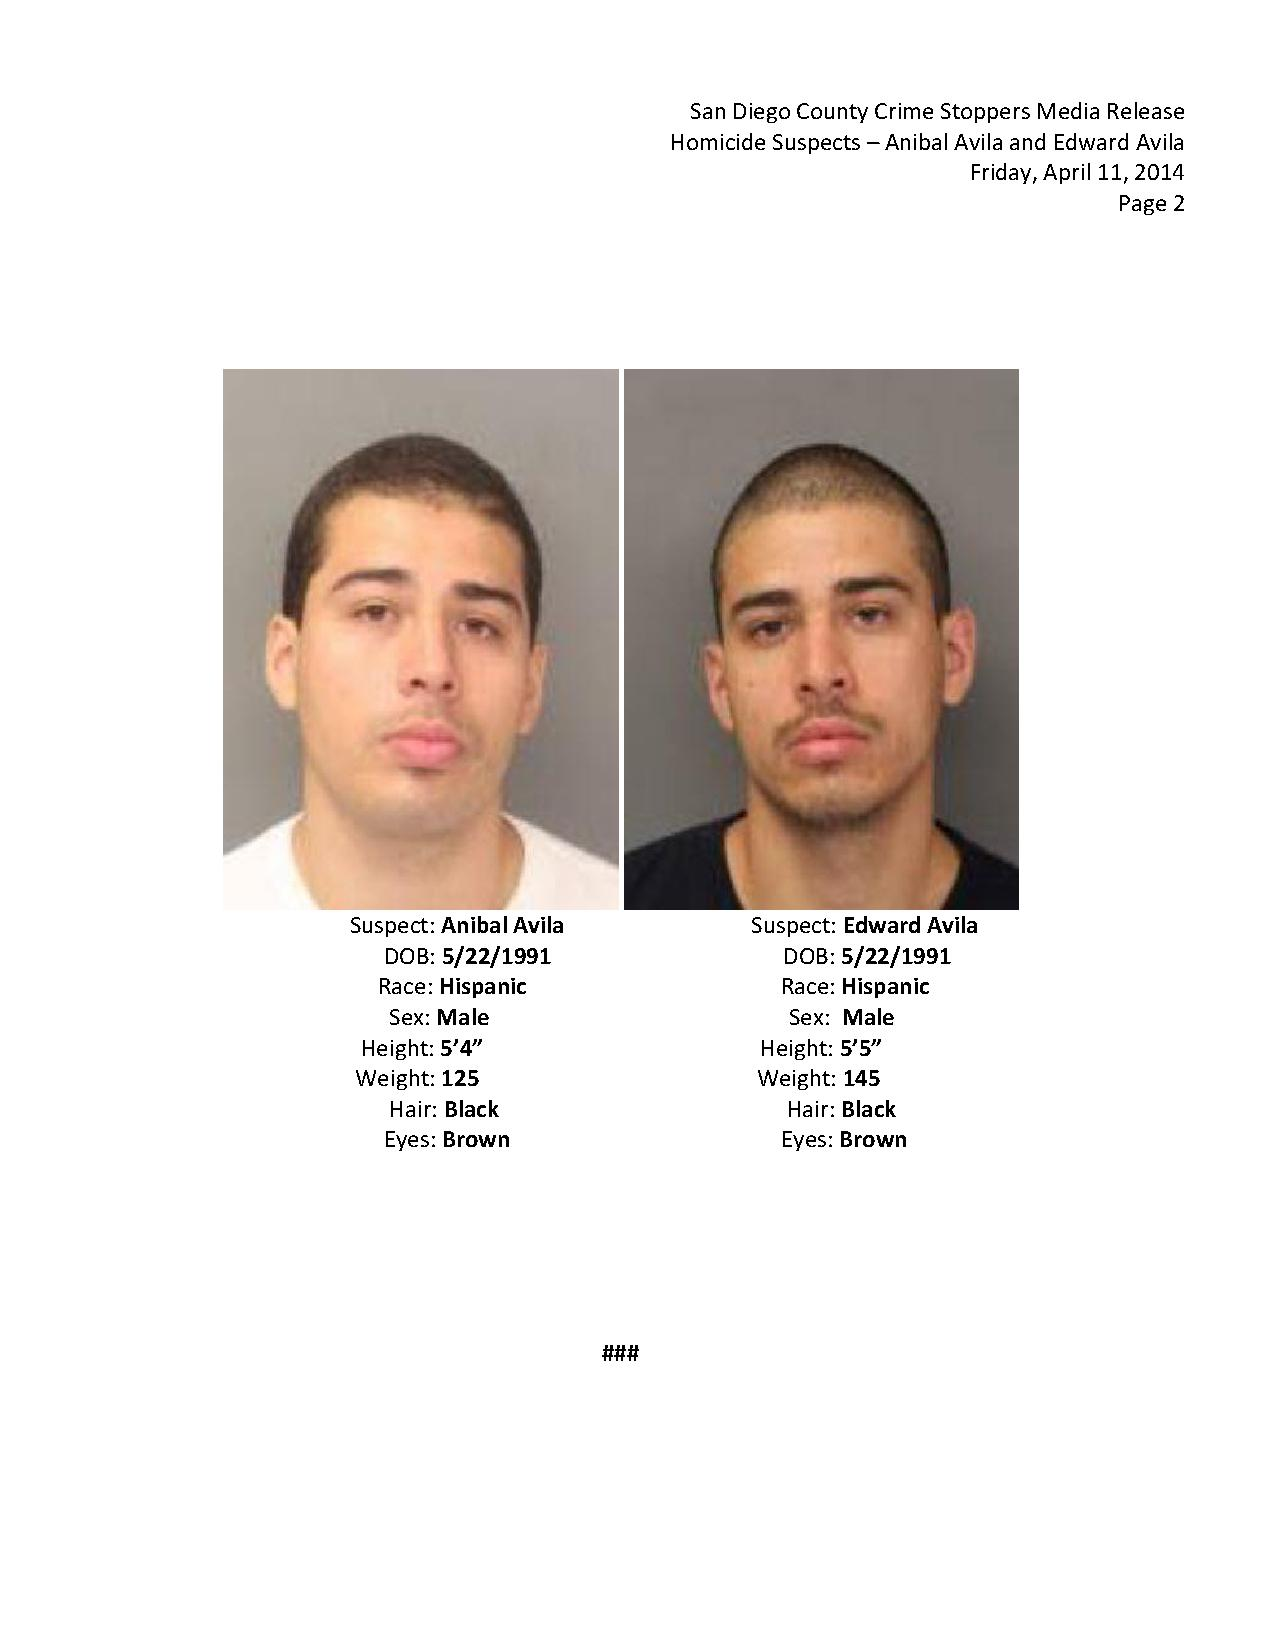 041114 Wanted For Homicide - Avila Brothers_2